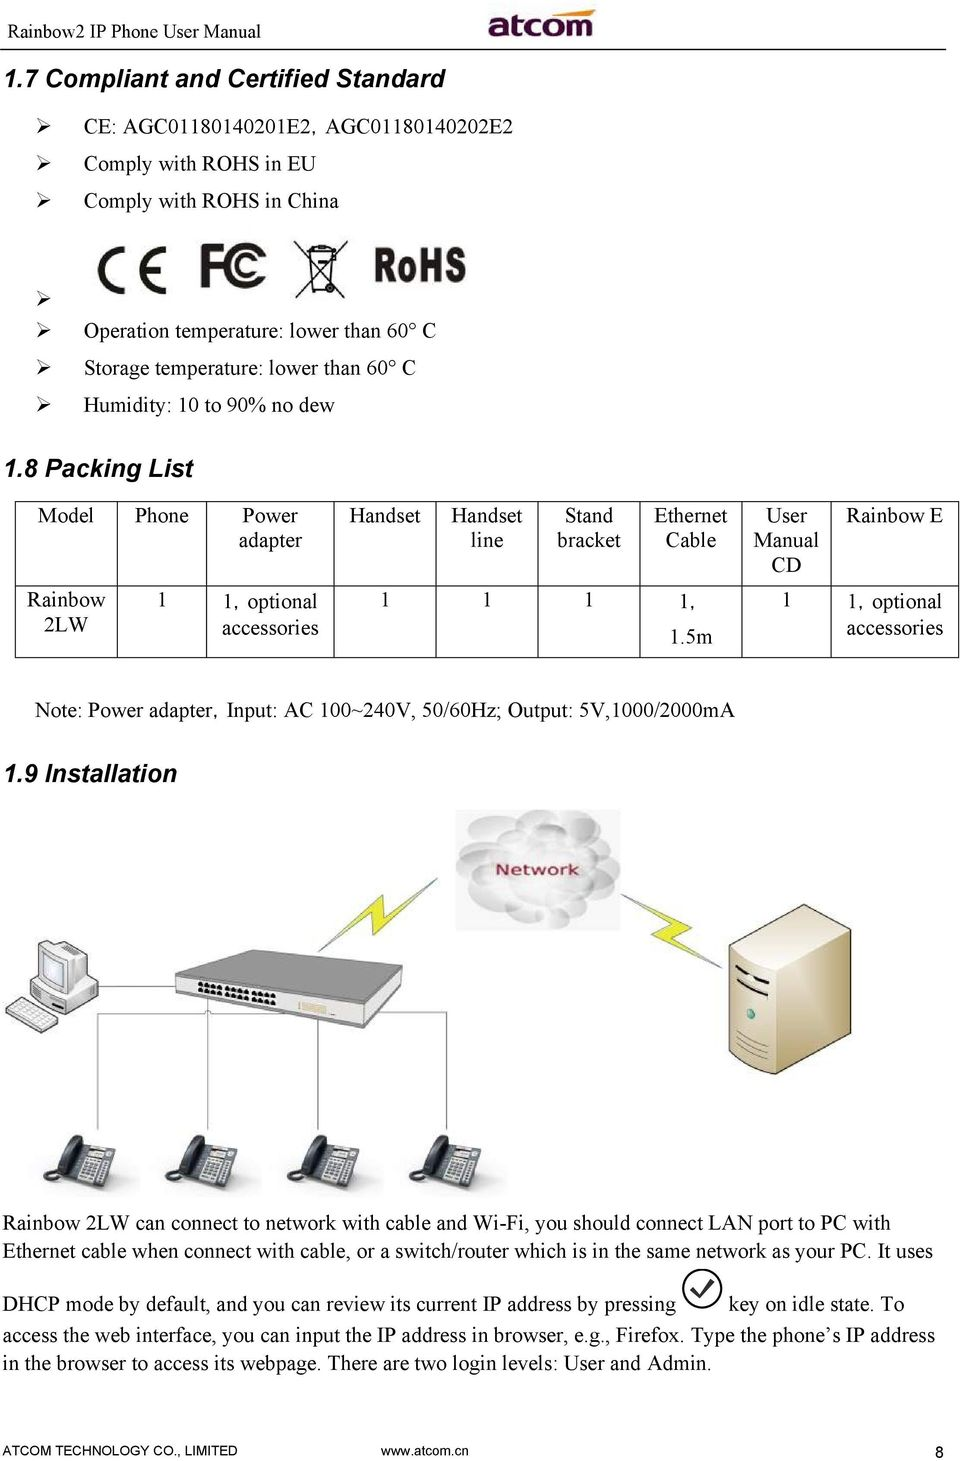 5m User Manual CD Rainbow E 1 1,optional accessories Note: Power adapter,input: AC 100~240V, 50/60Hz; Output: 5V,1000/2000mA 1.